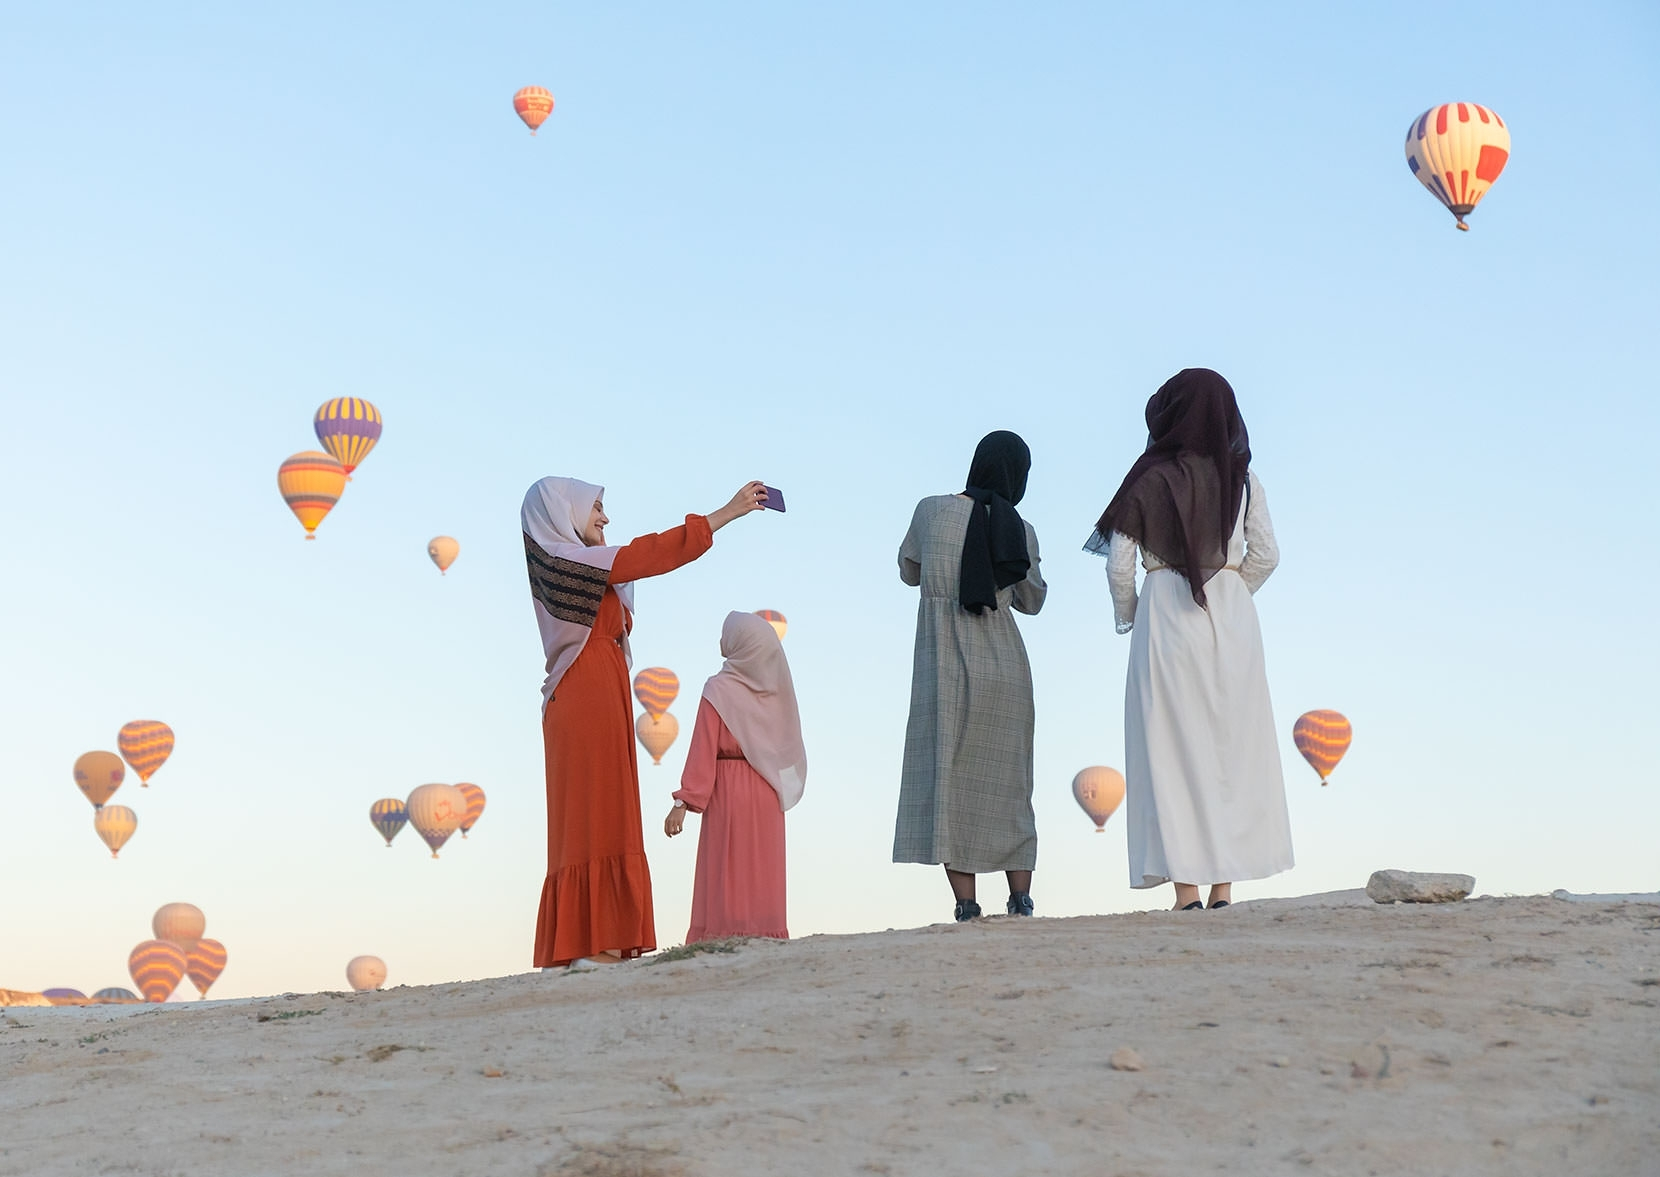 Every country... Muslim girls enjoy ballon backdrops - I was scrabbling for the perfect alignment (everything is moving)